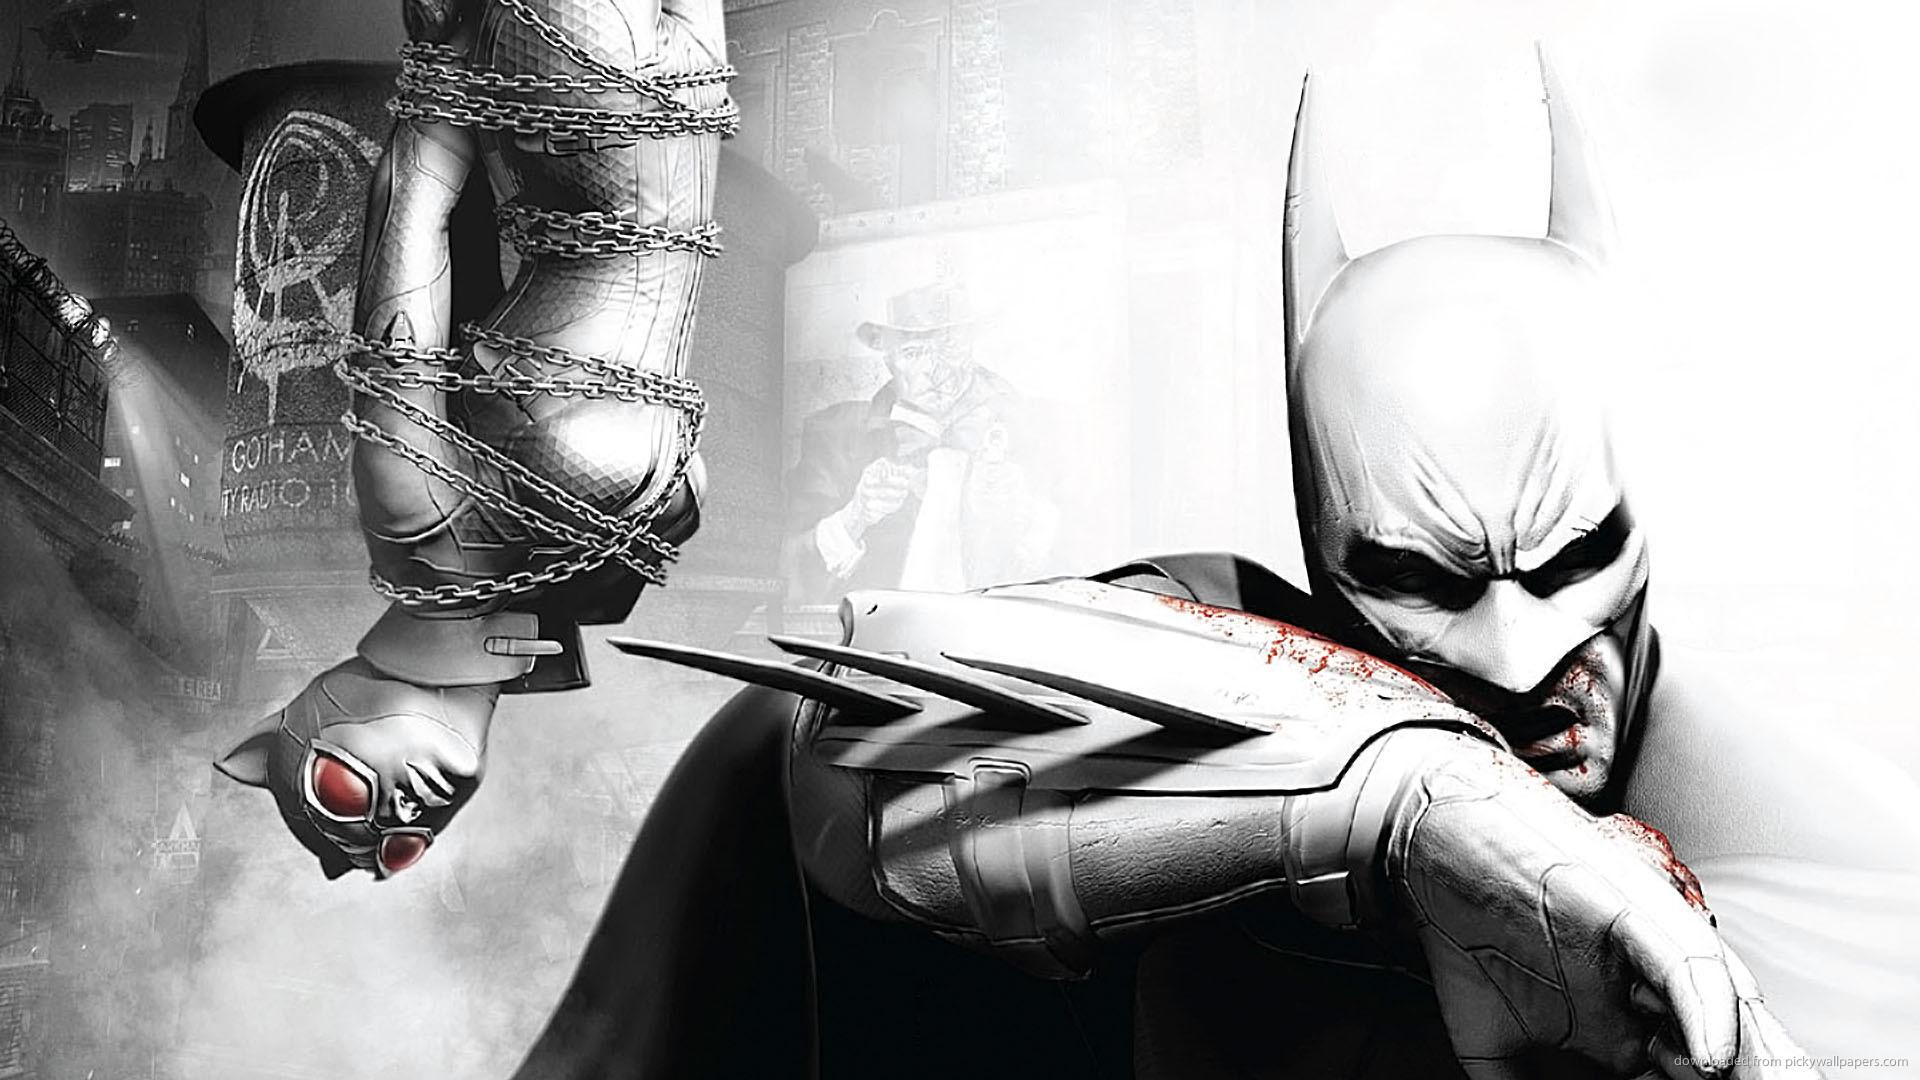 Télécharger 1920x1080 Batman Arkham City Art Concept Wallpaper